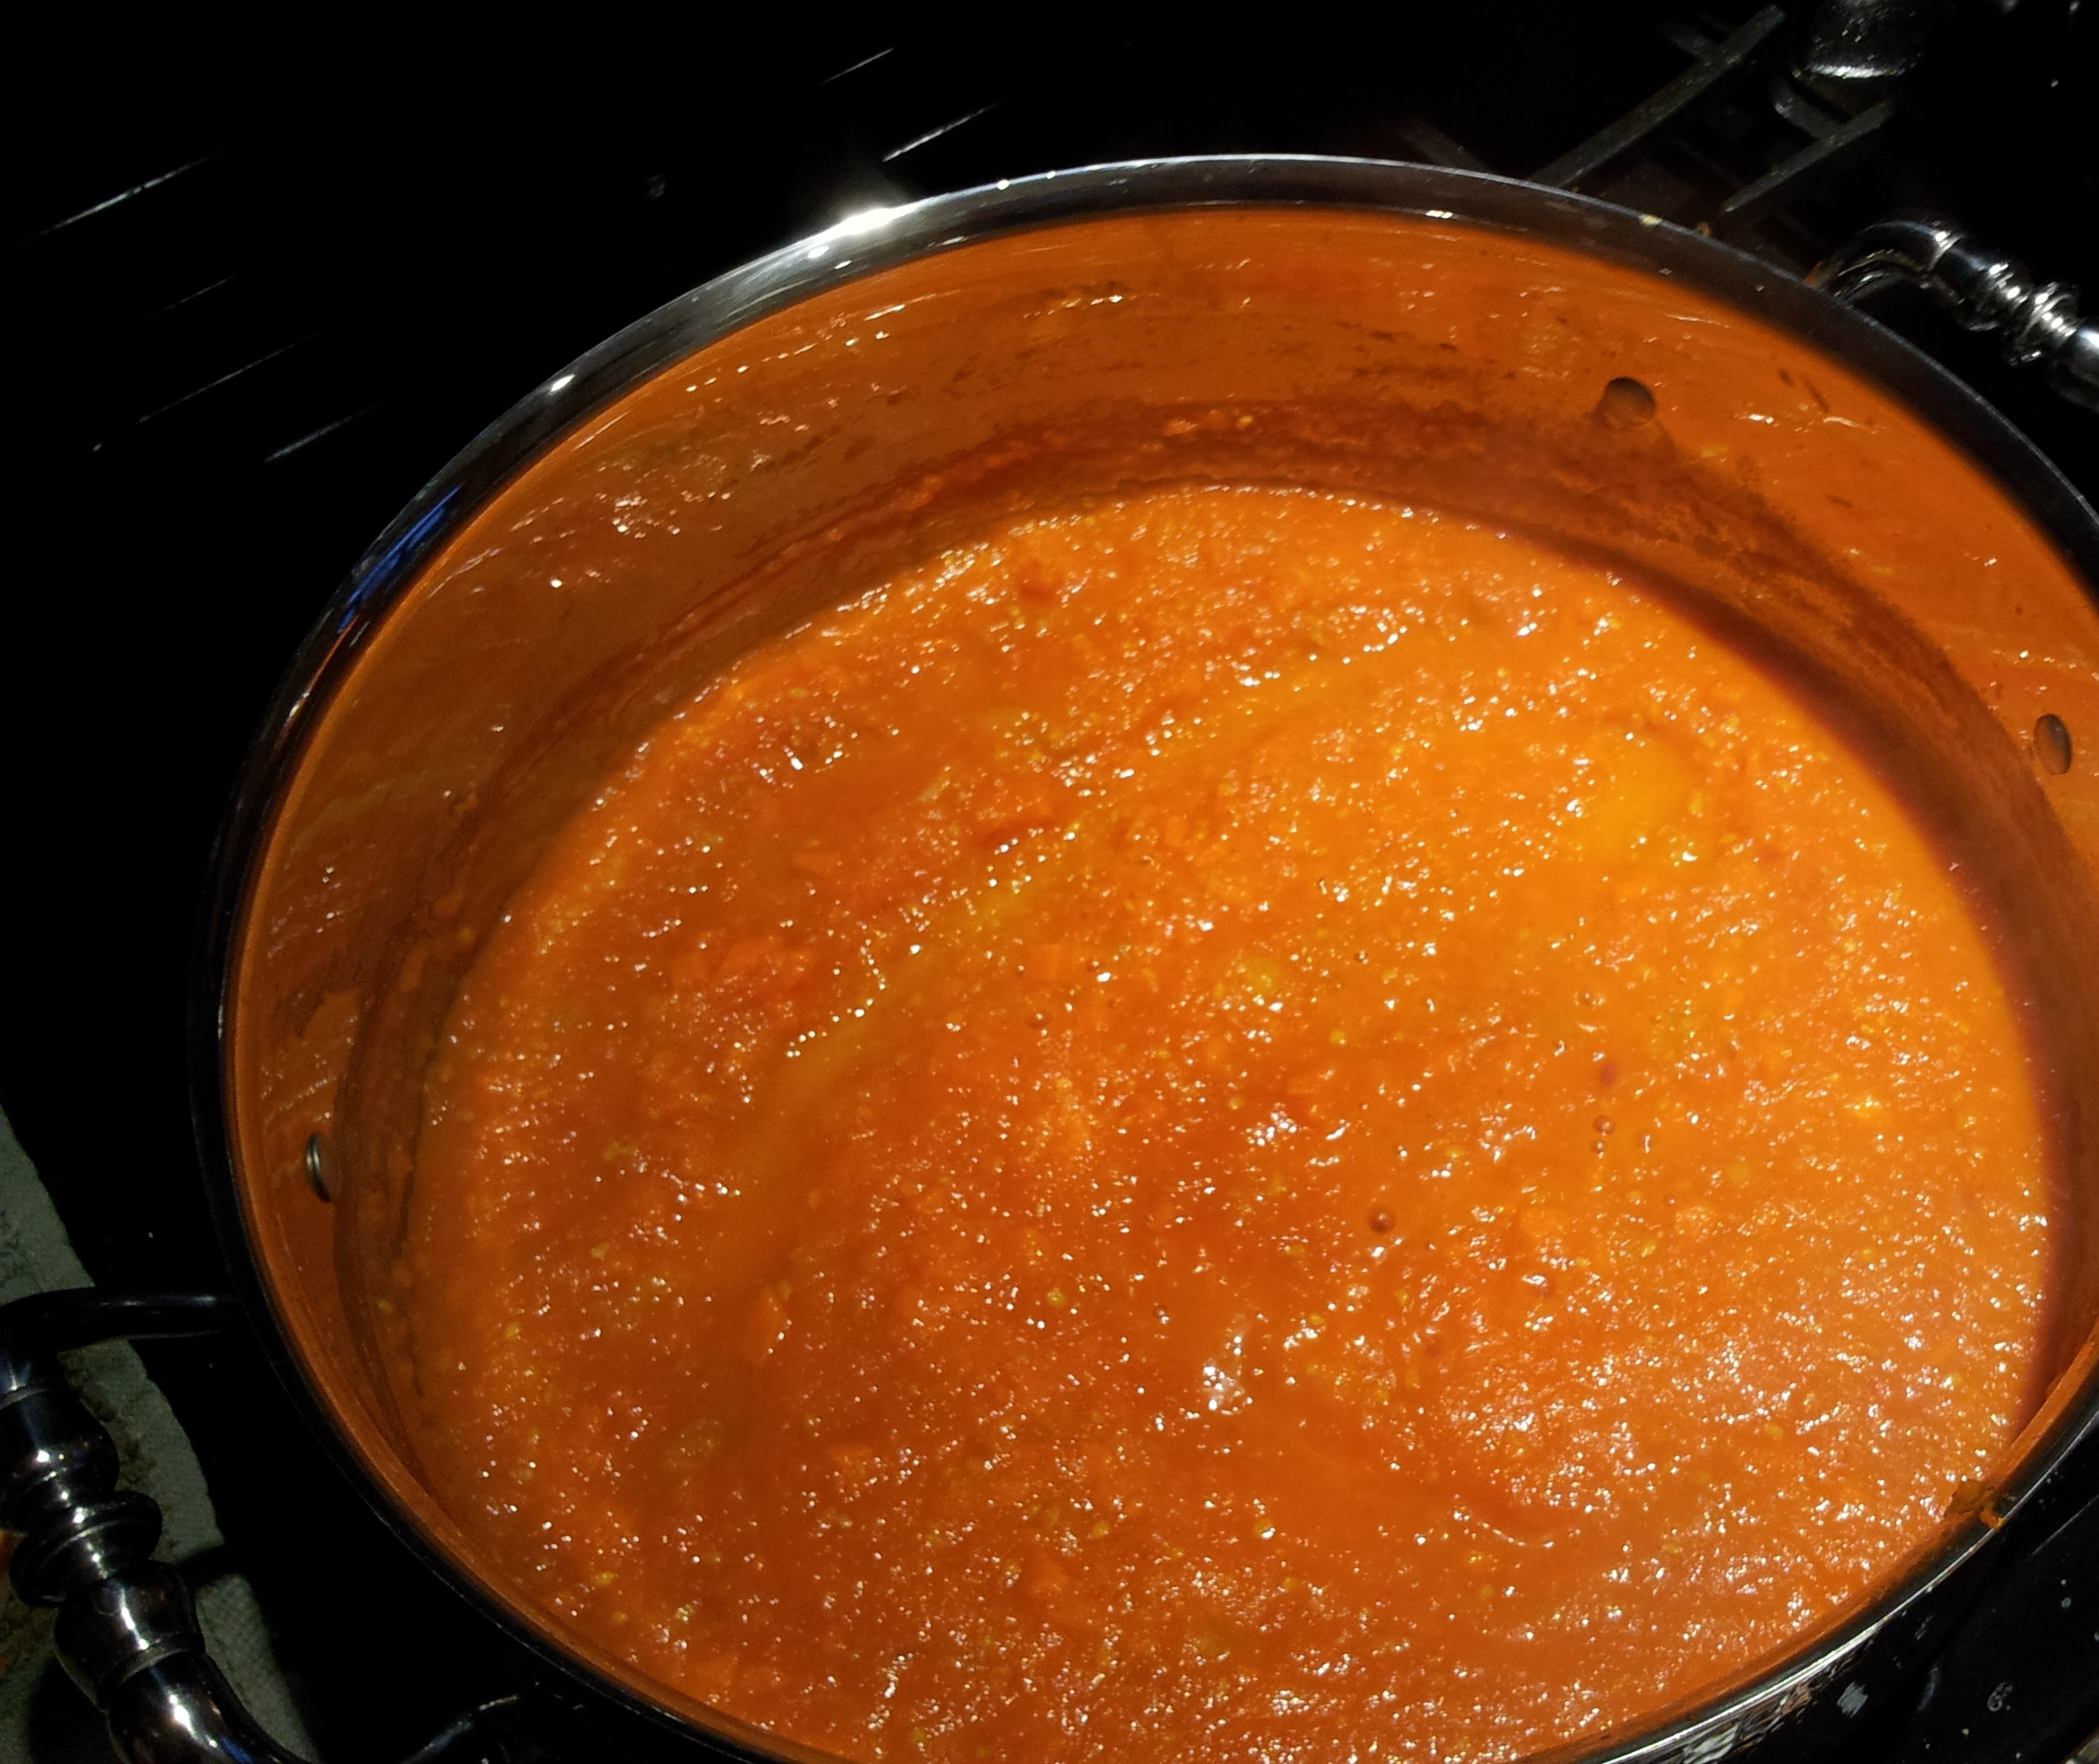 Tomato Sauce with Heavy Cream Simmering